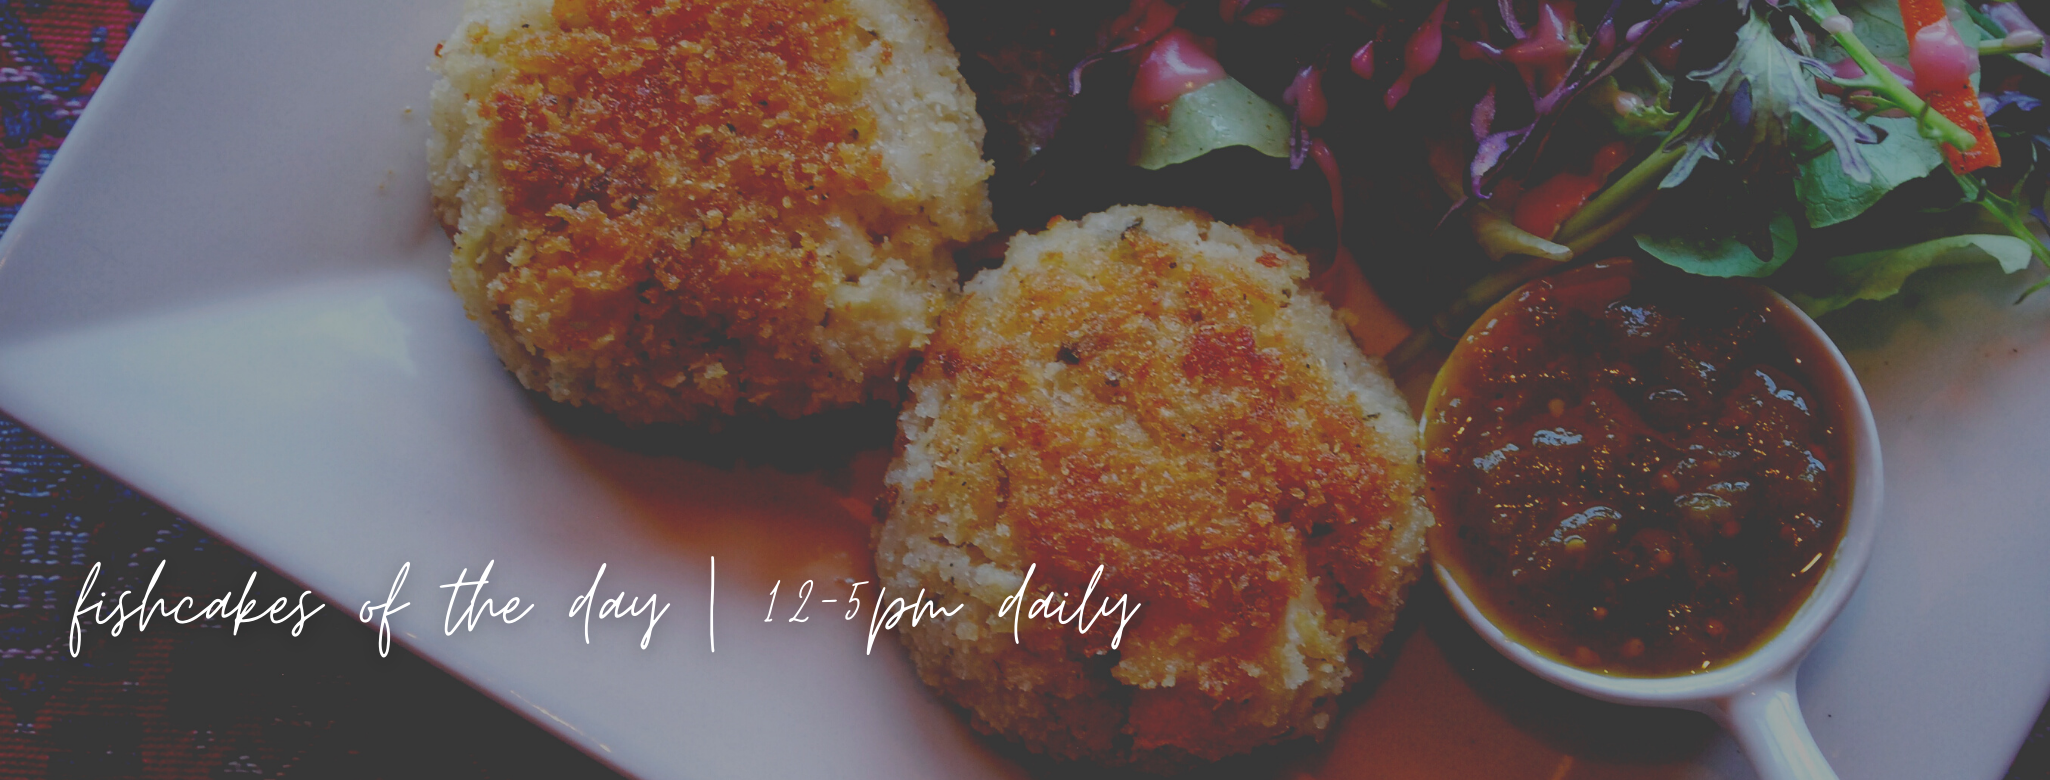 Fishcakes of the Day     12-5pm